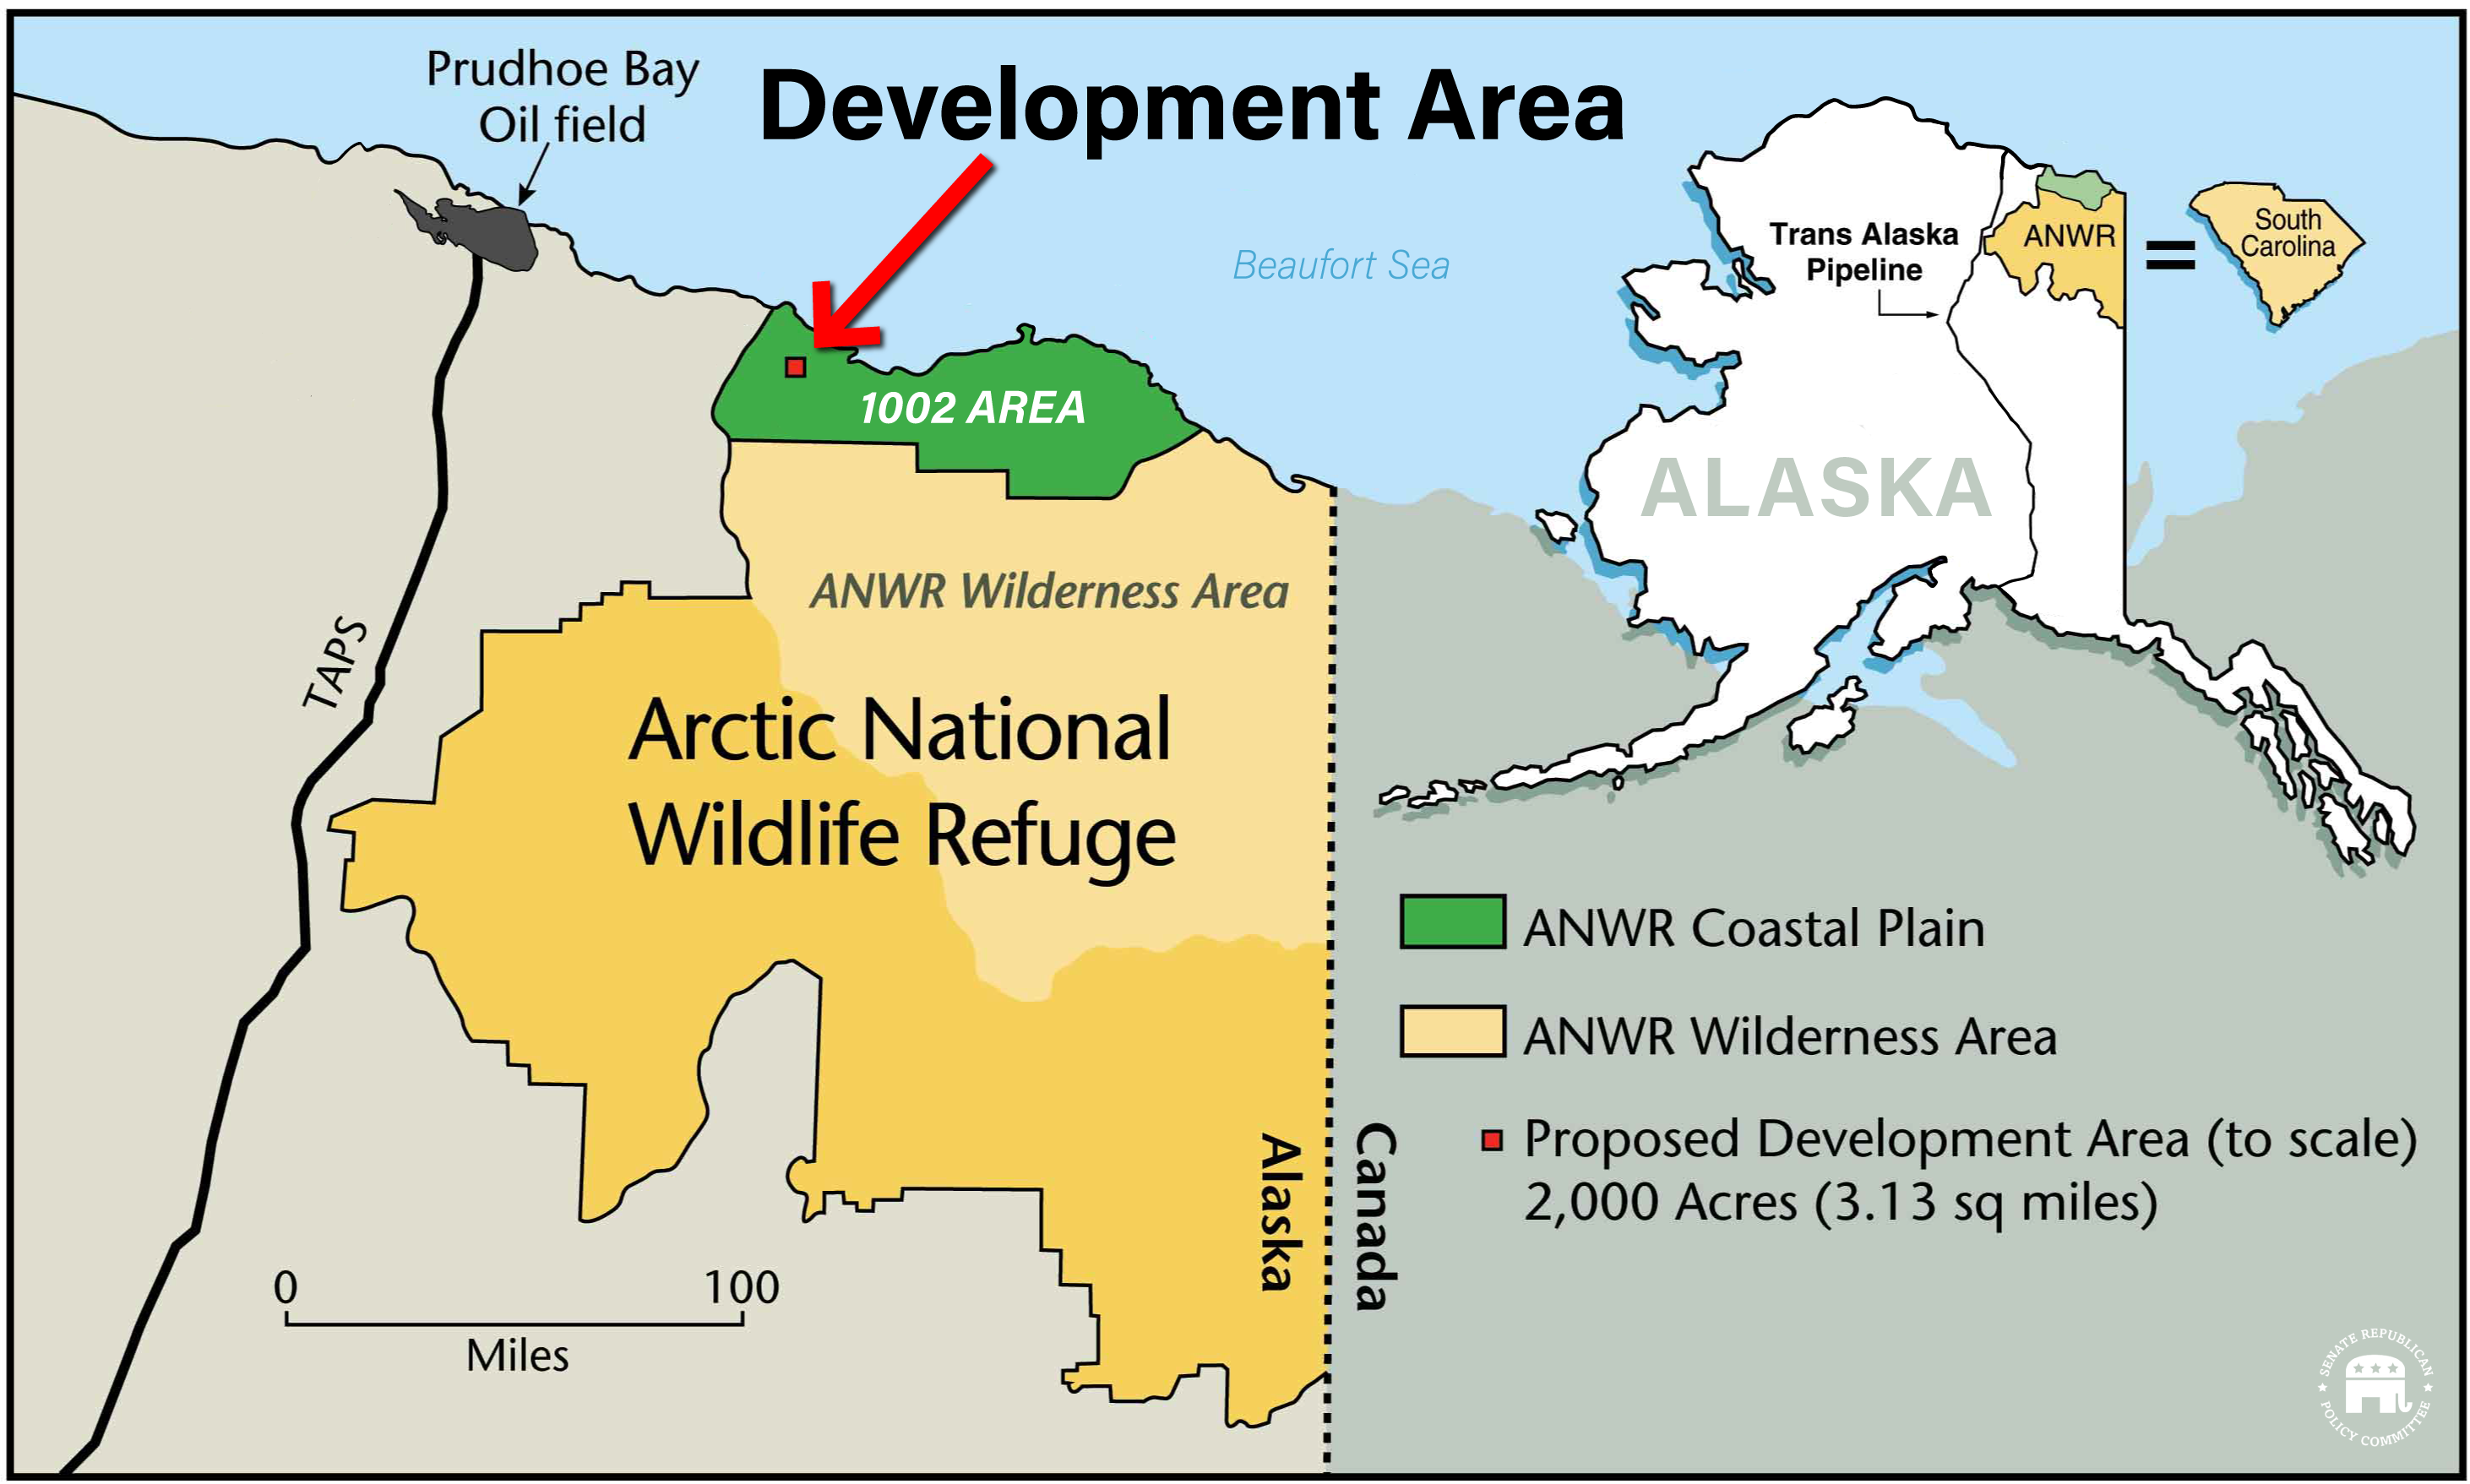 ANWR: U.S. Energy Dominance